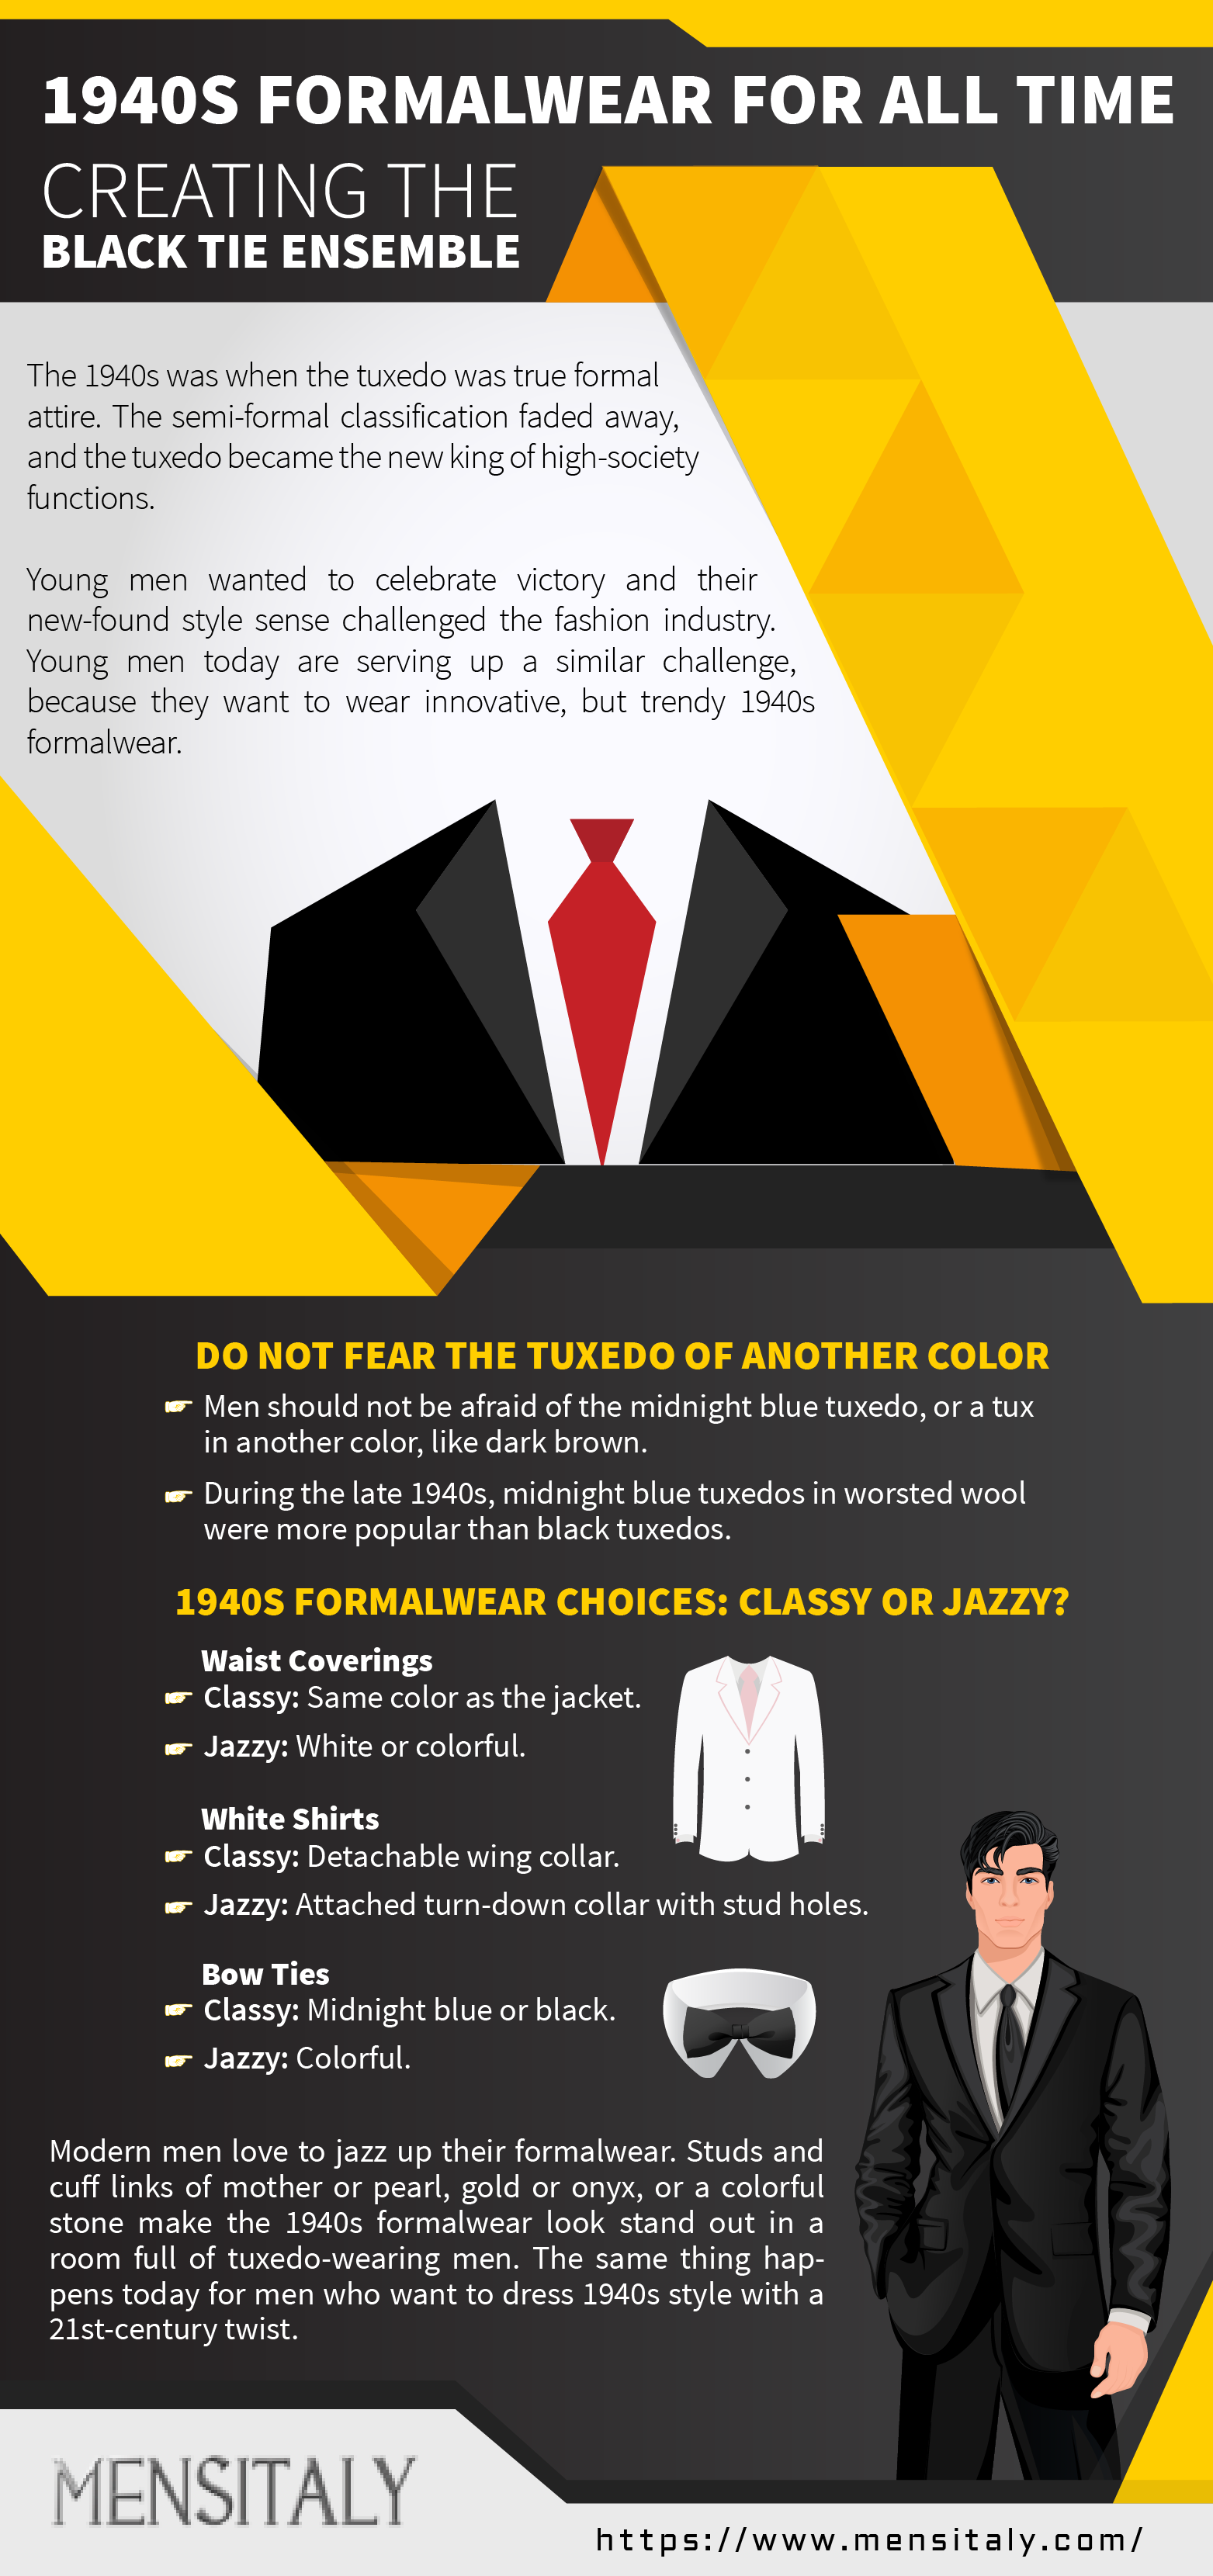 1940s Formalwear for All Time: Creating the Black Tie Ensemble